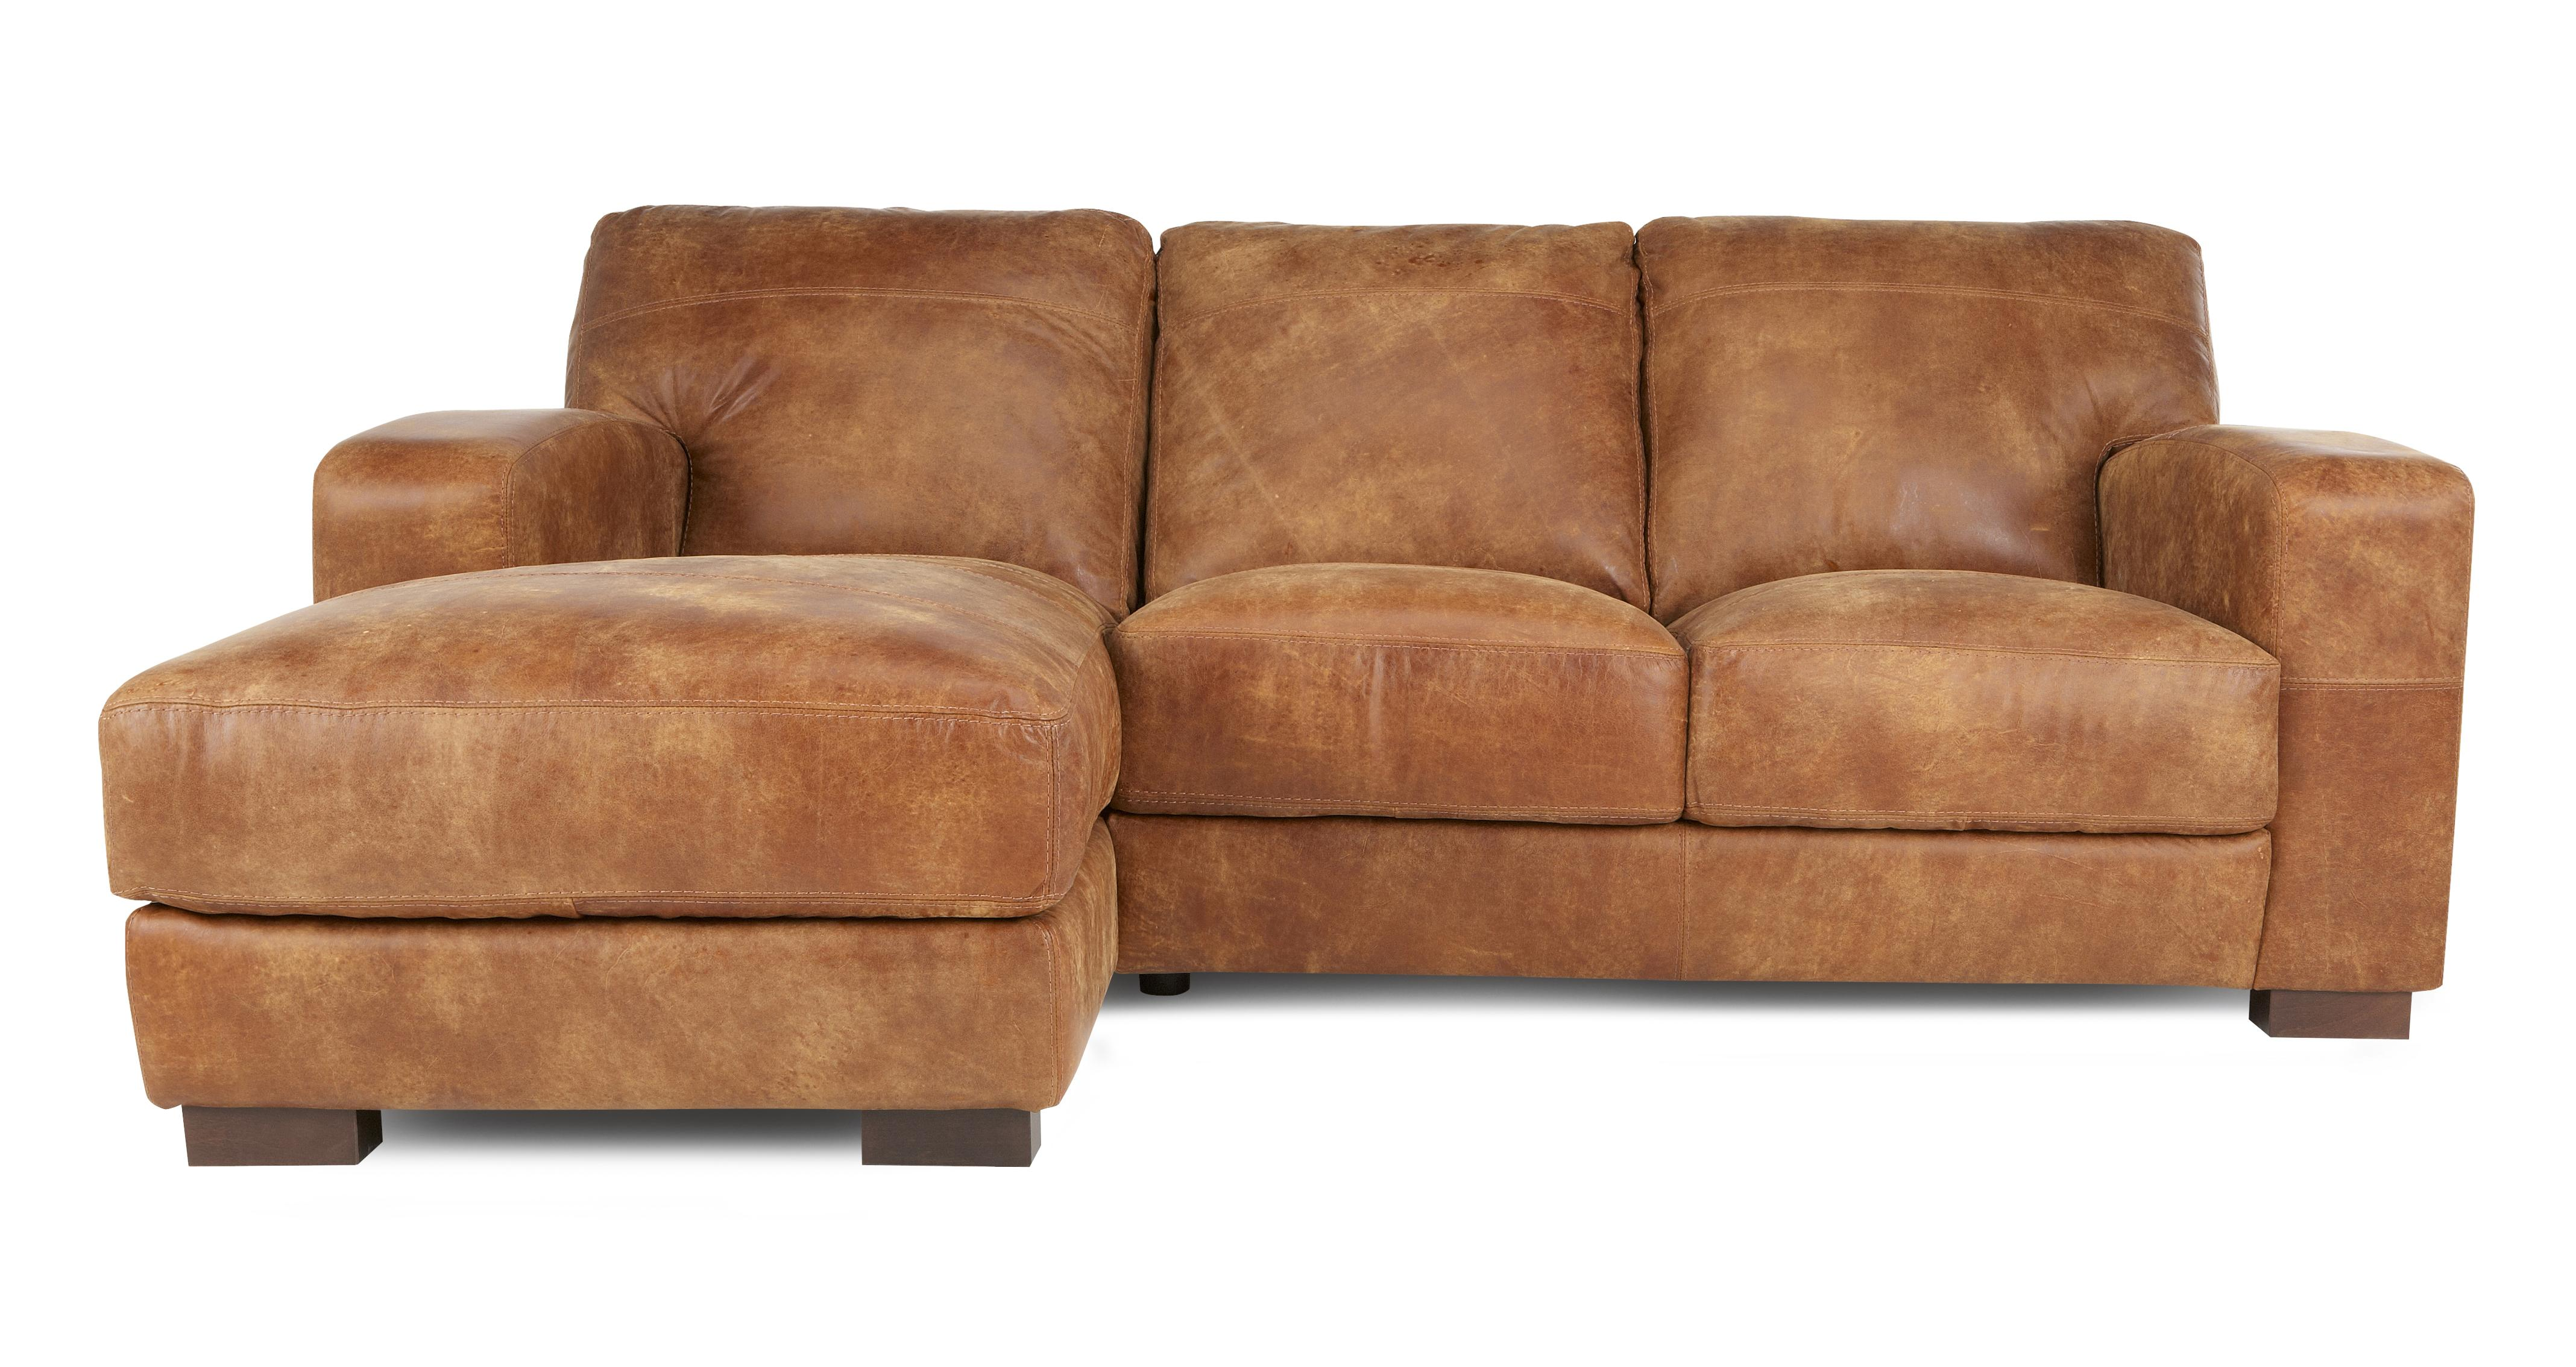 Caesar Clearance Left Hand Facing 3 Seater Chaise End Sofa Outback